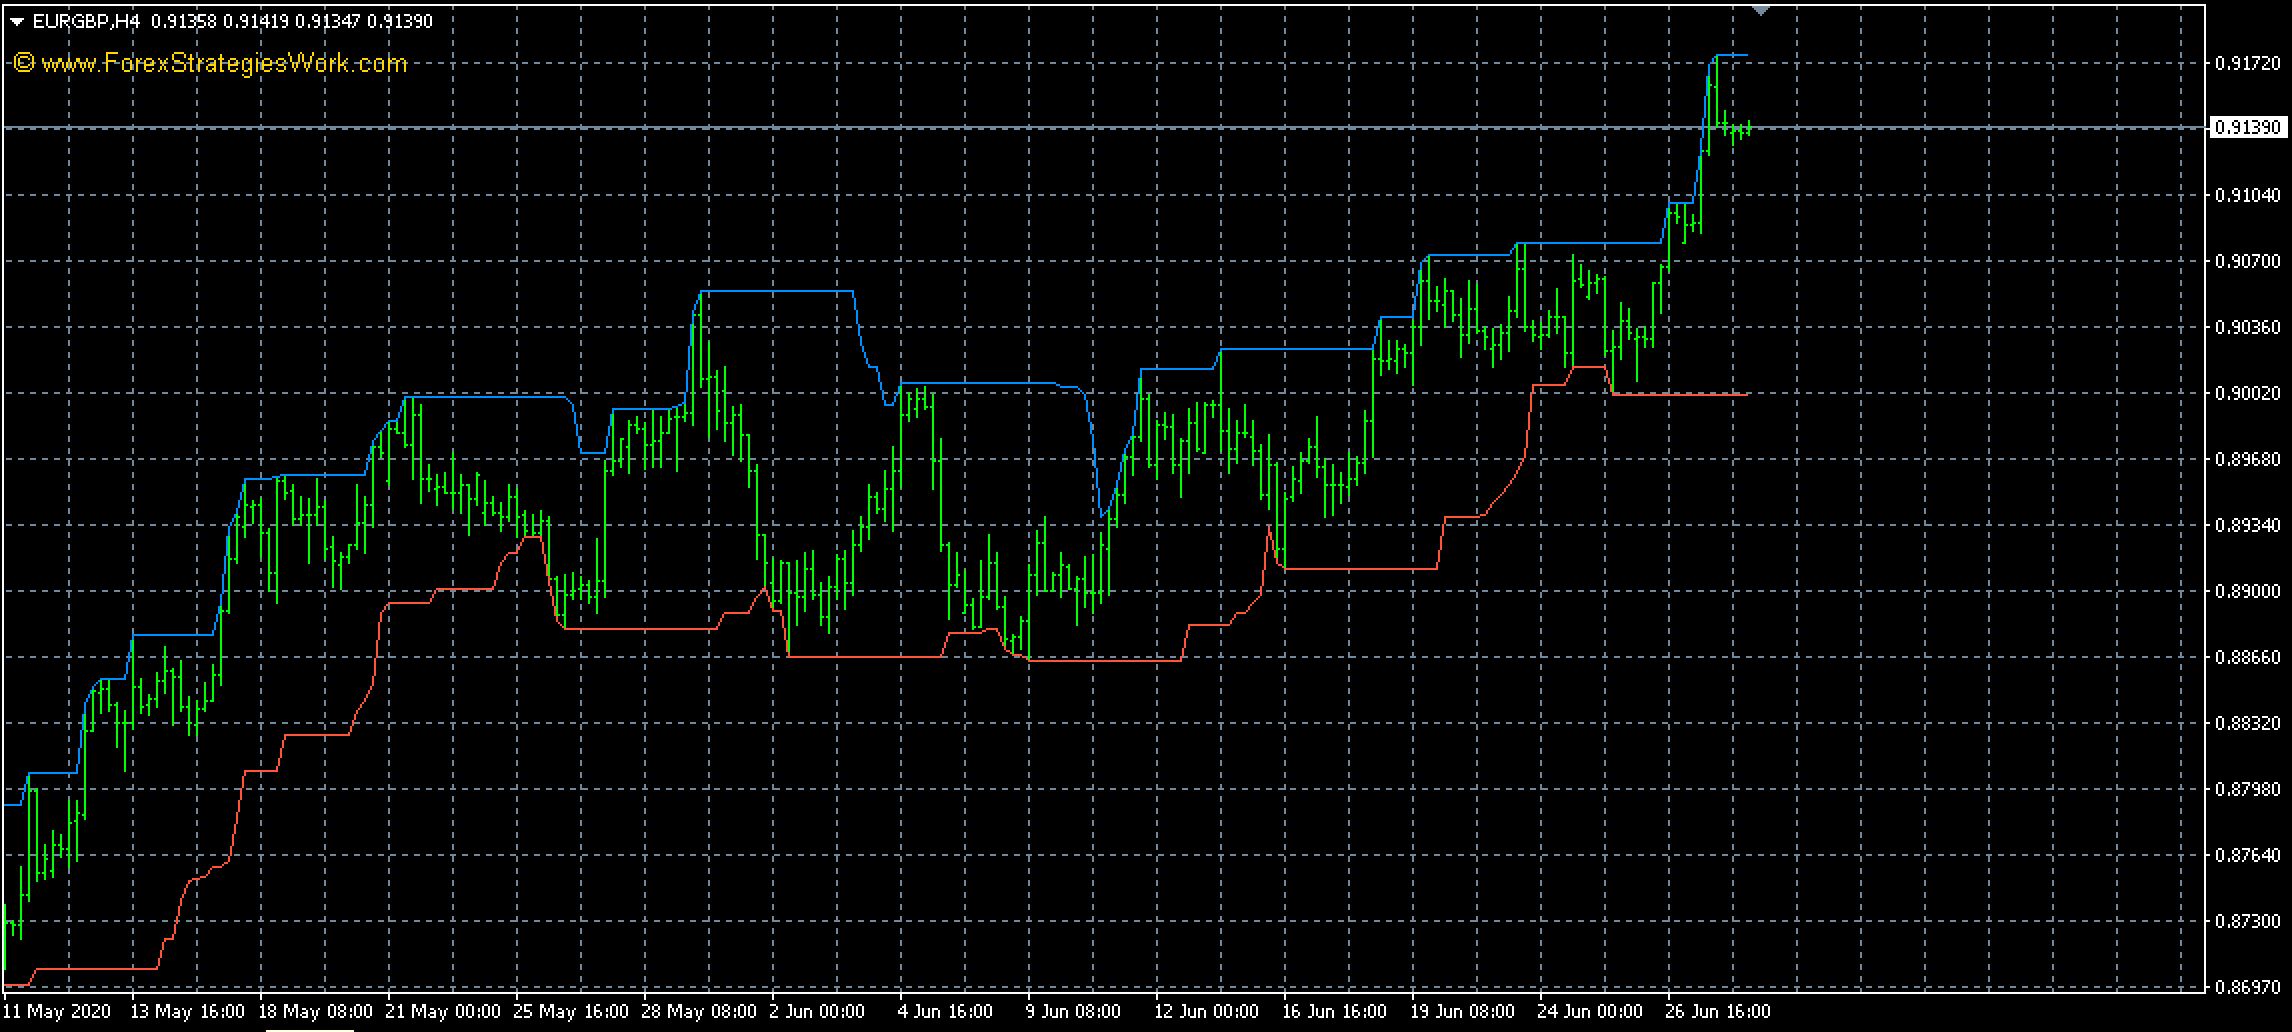 Donchian Channel Indicator: When to go Long?